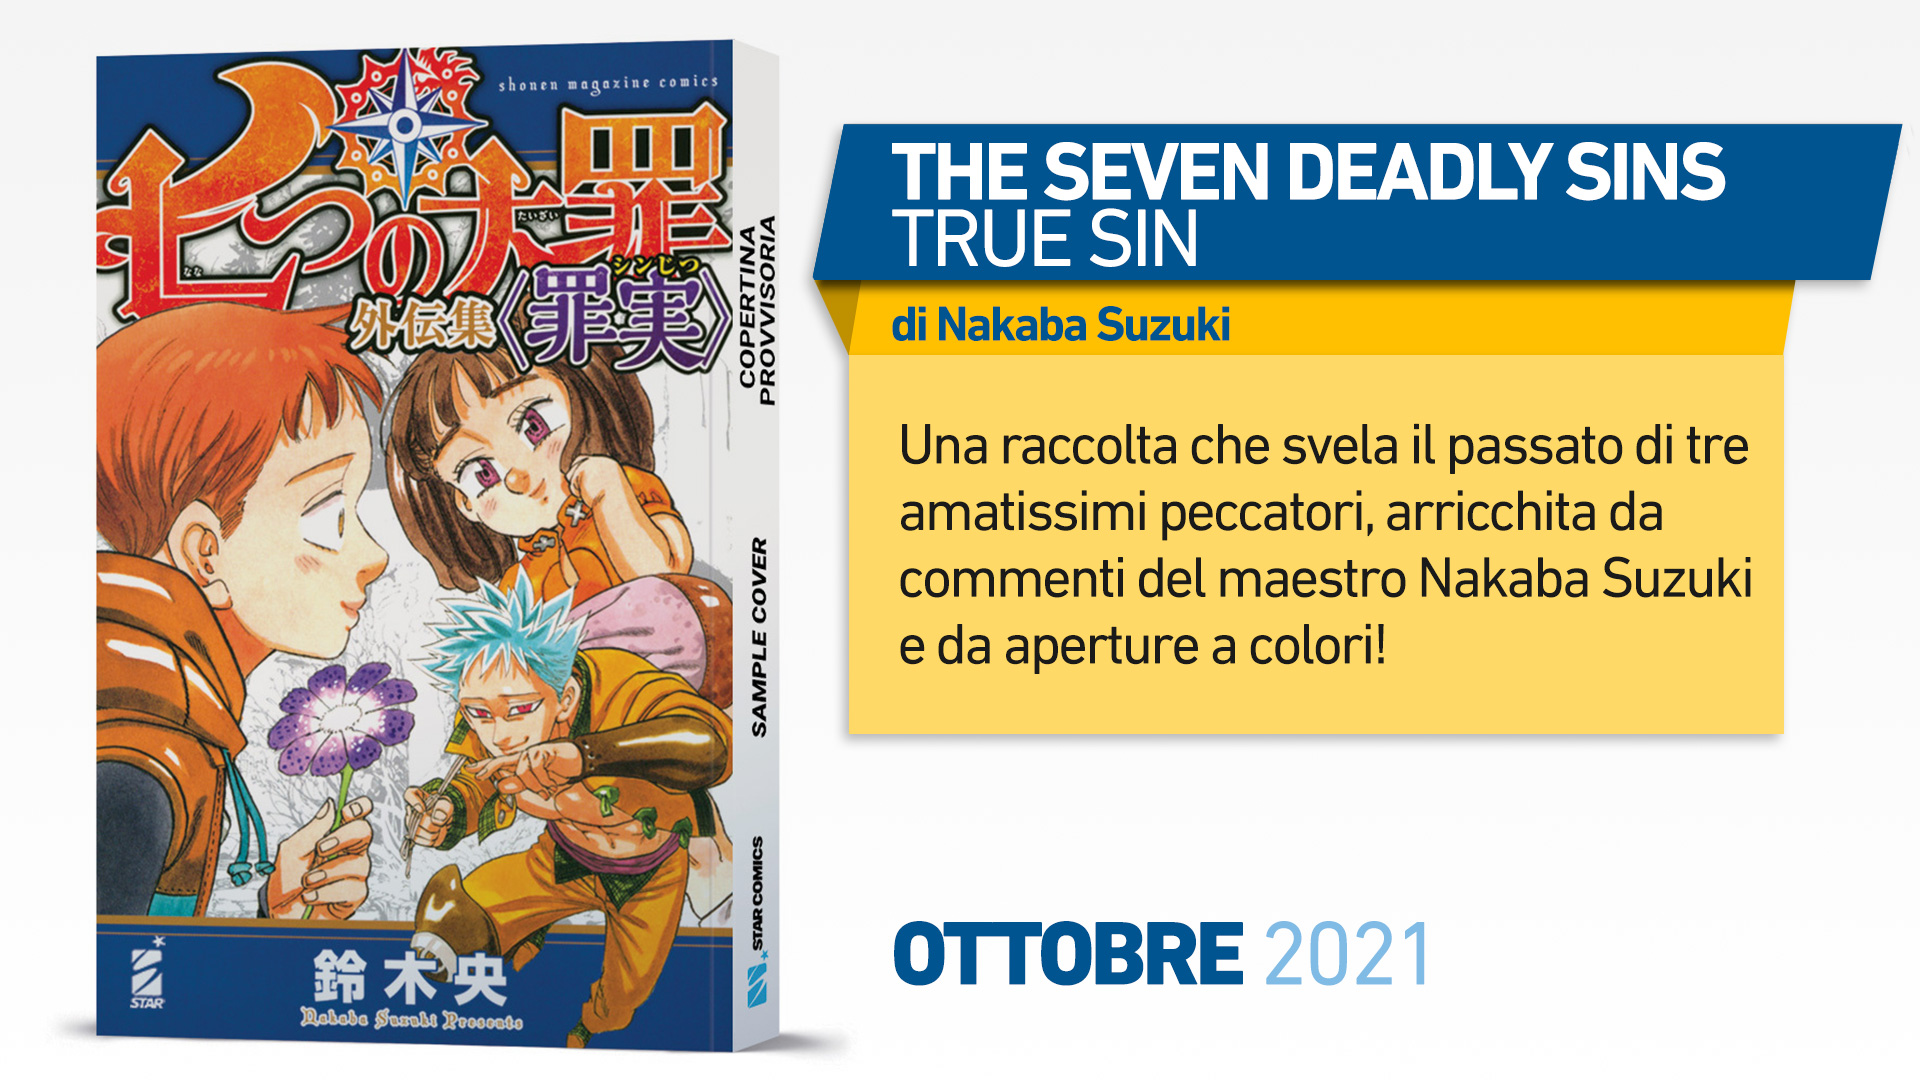 THE SEVEN DEADLY SINS - TRUE SIN